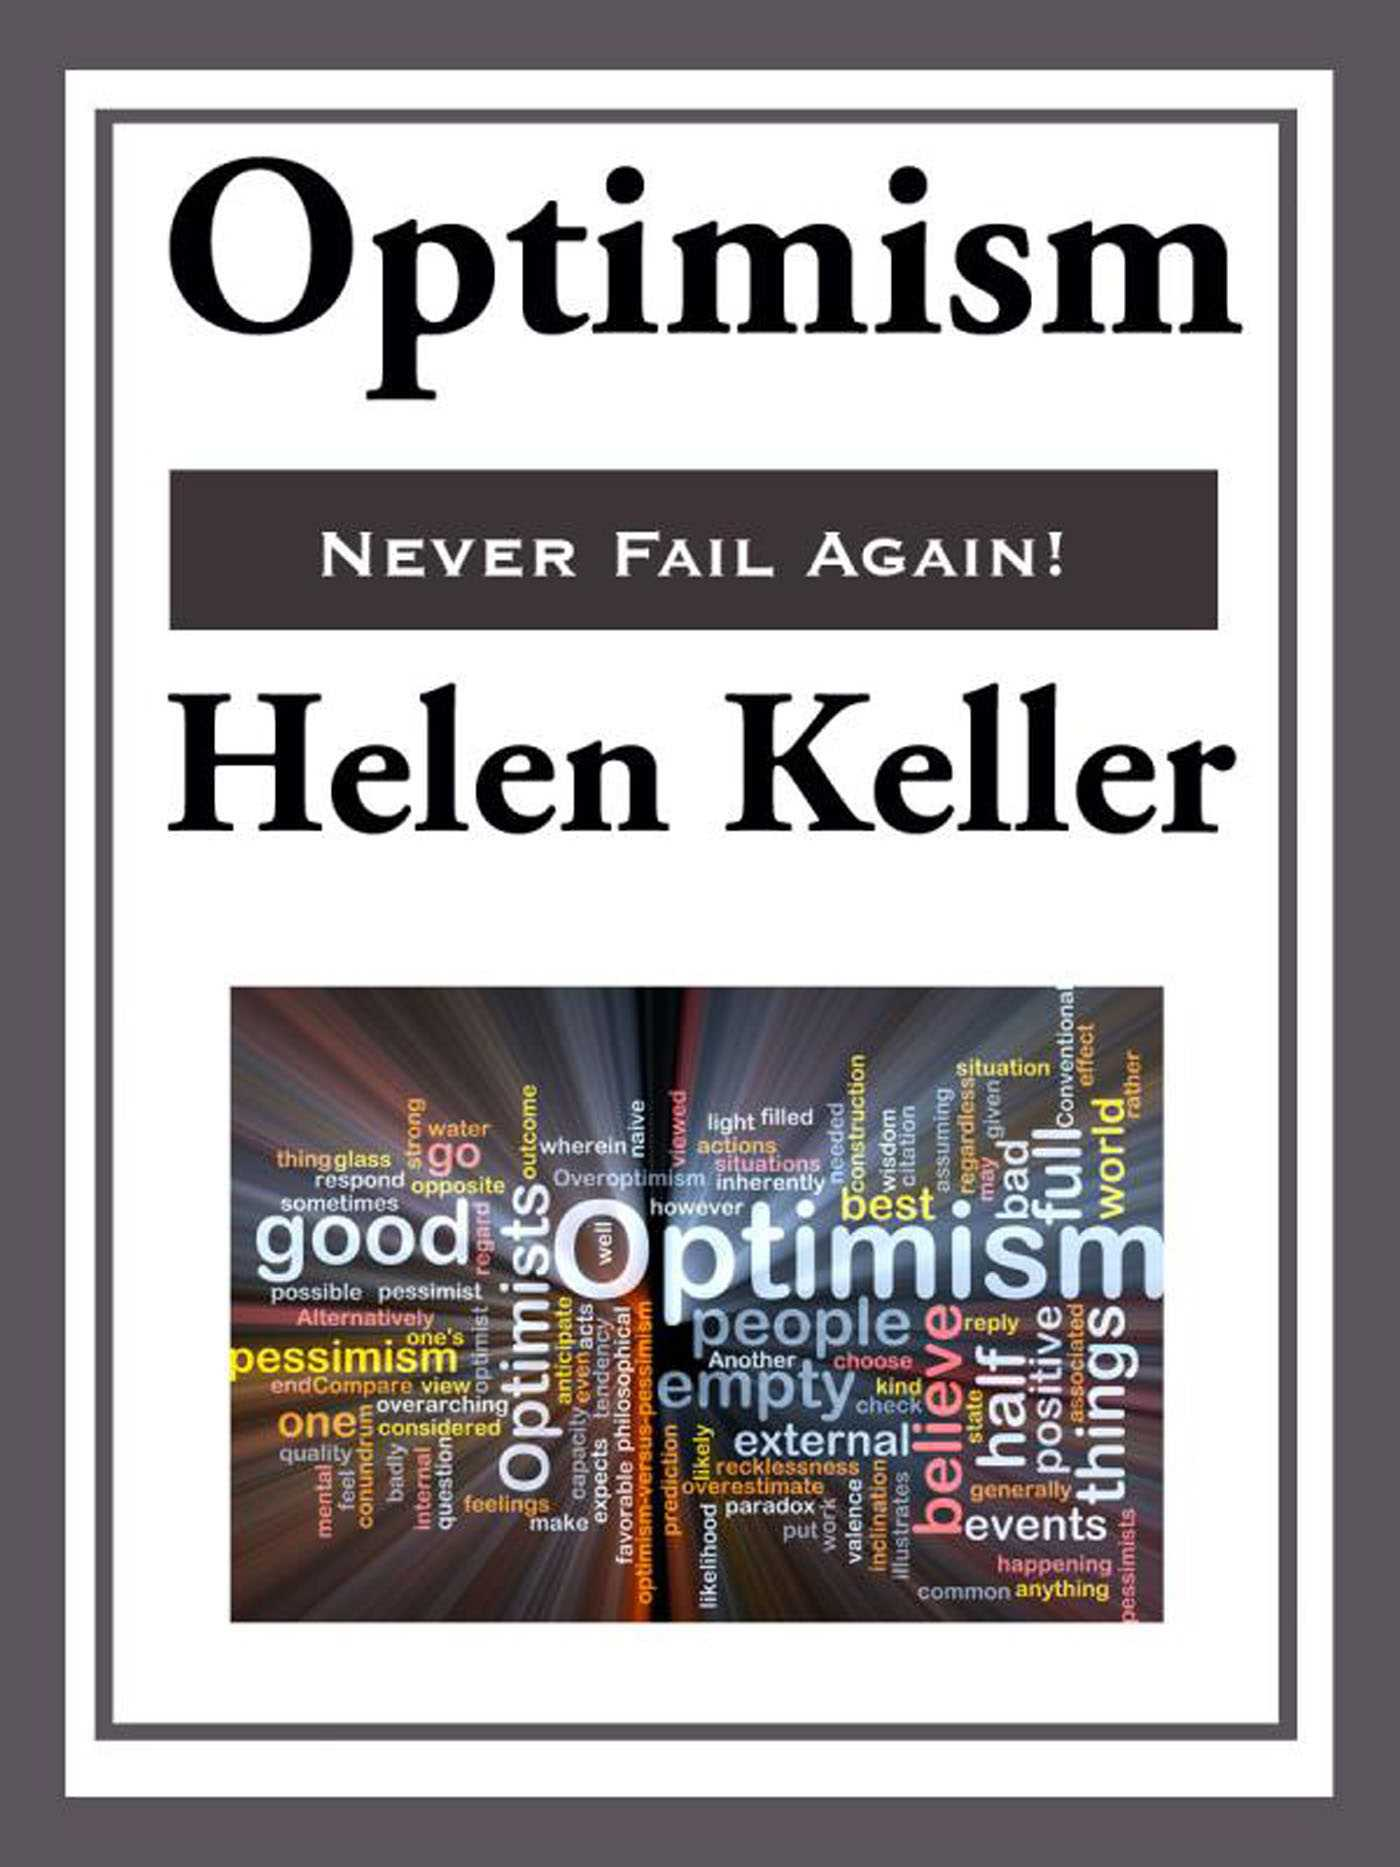 essay on optimism 10 reasons for hope and optimism or 'why we are not screwed': inspiring essay listing 10 reasons for hope and optimism in these wild and crazy times.